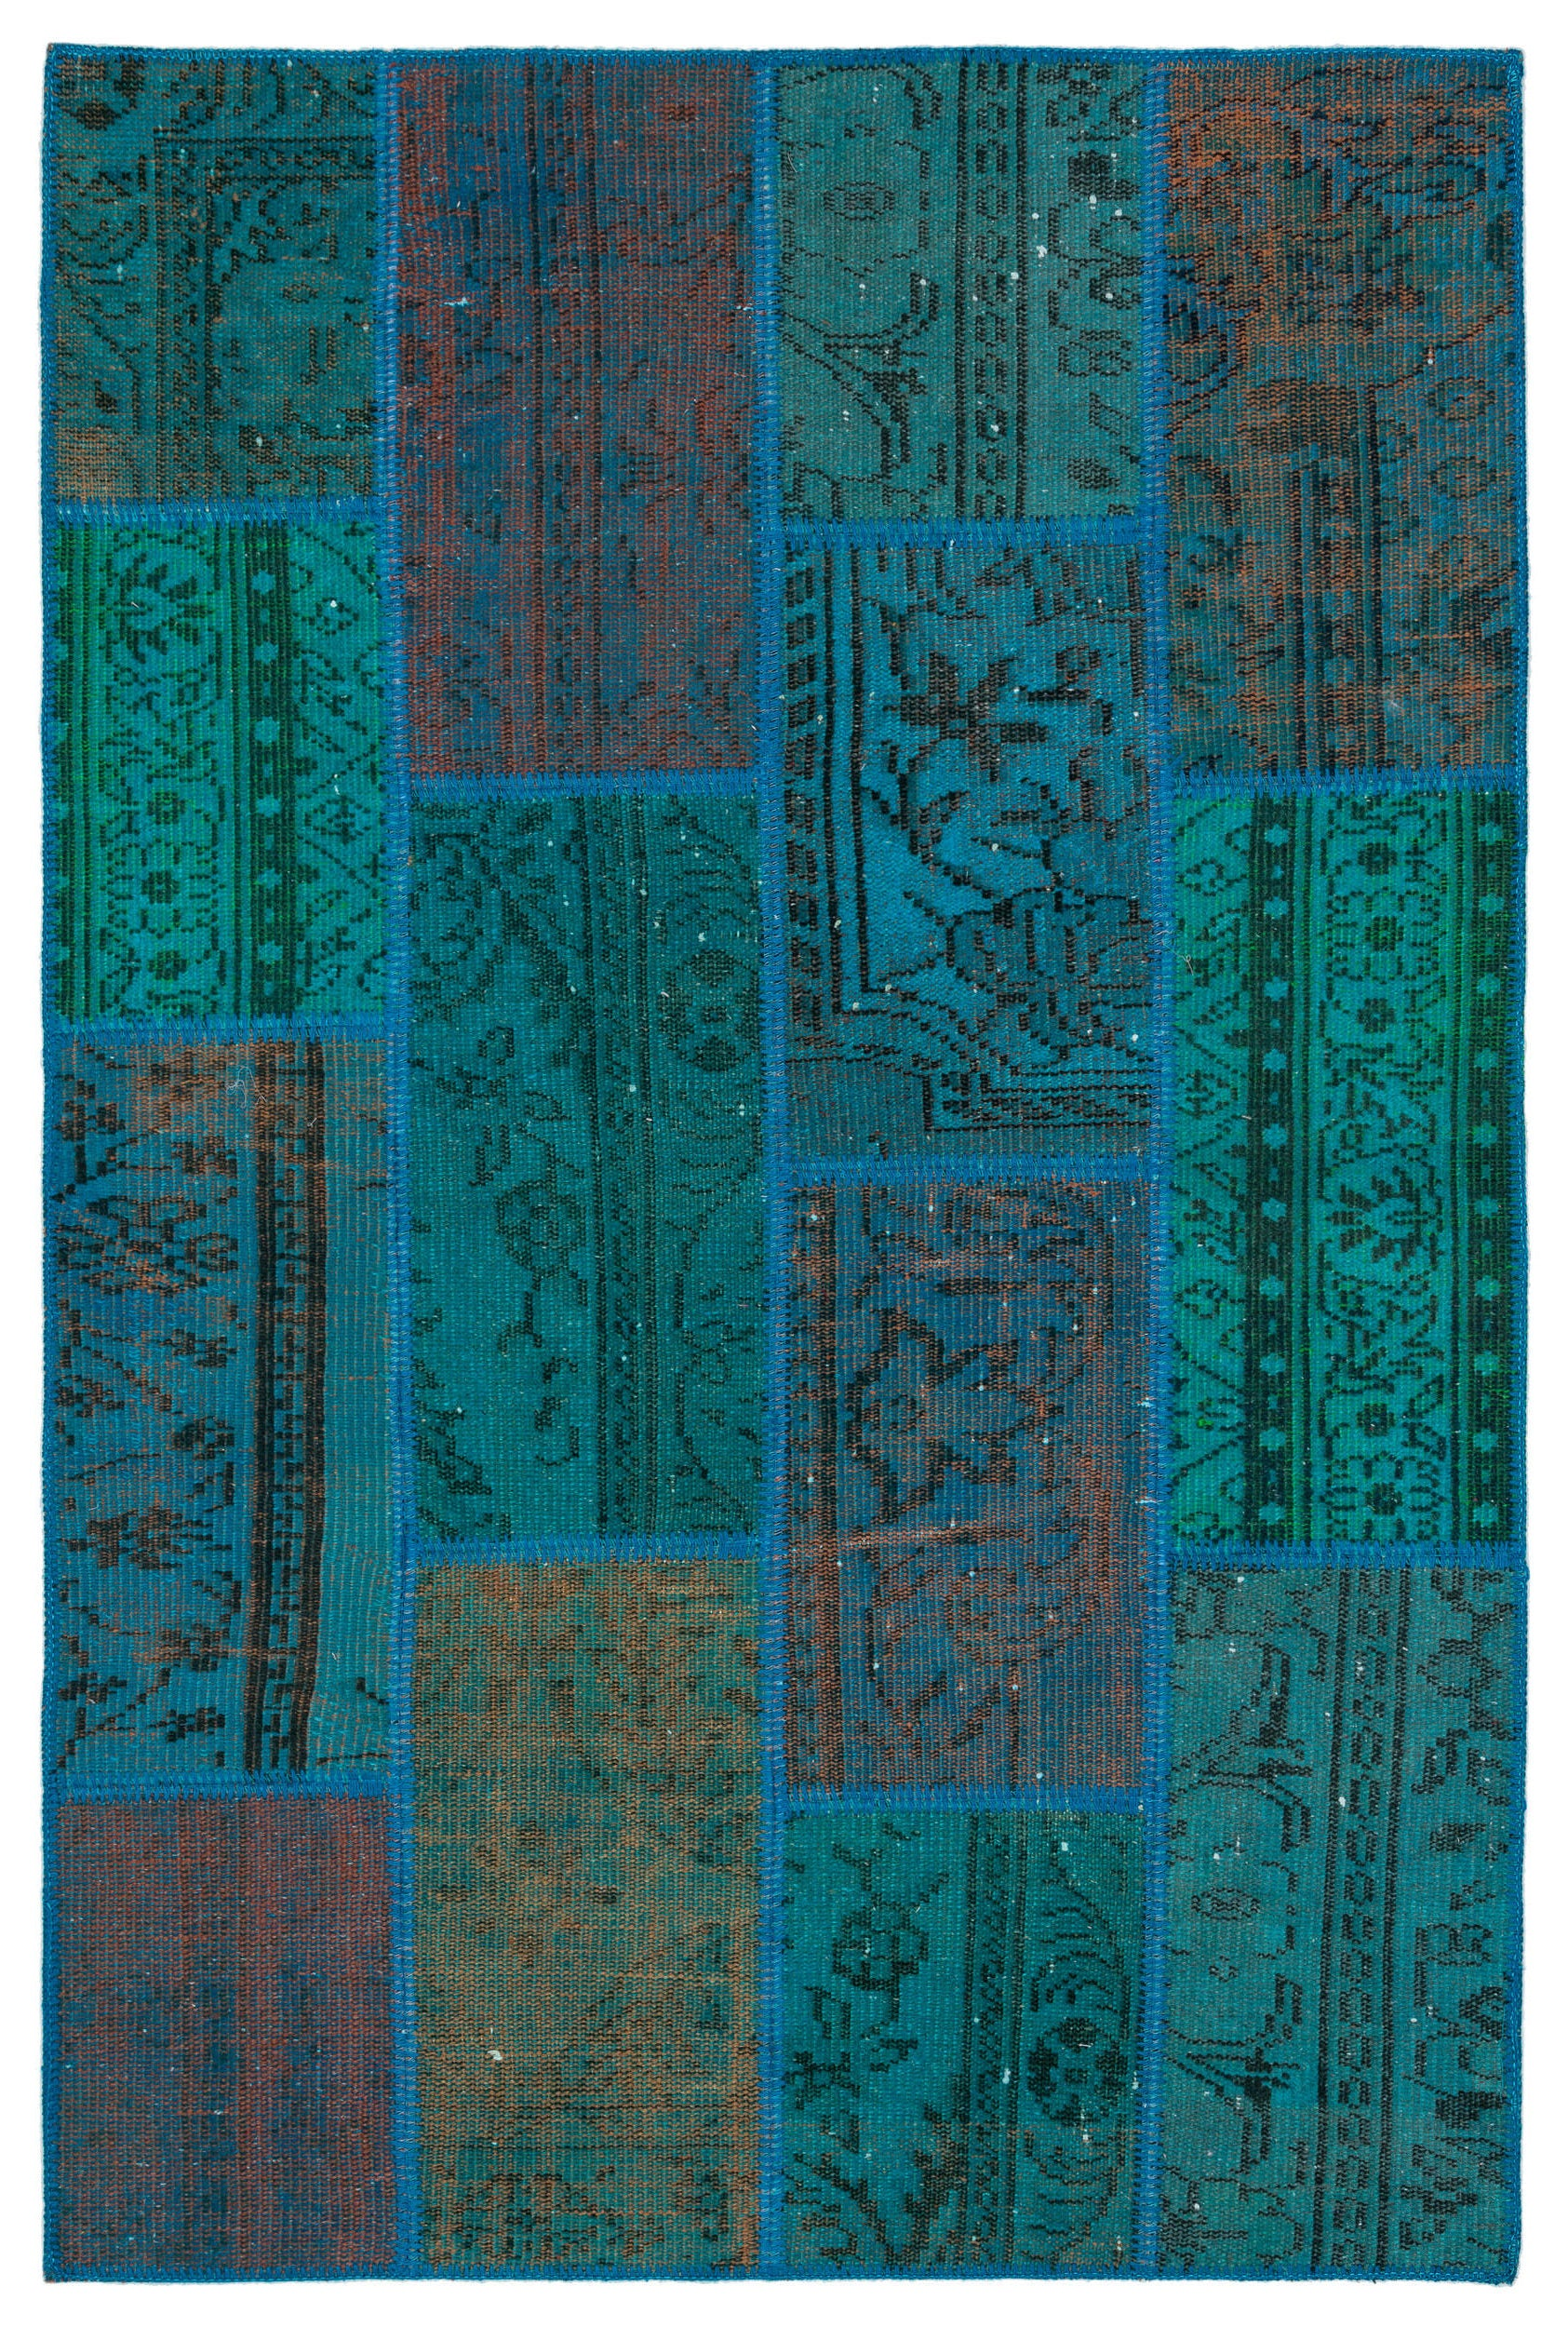 Turquoise  Over Dyed Patchwork Unique Rug 3'11'' x 5'11'' ft 120 x 181 cm